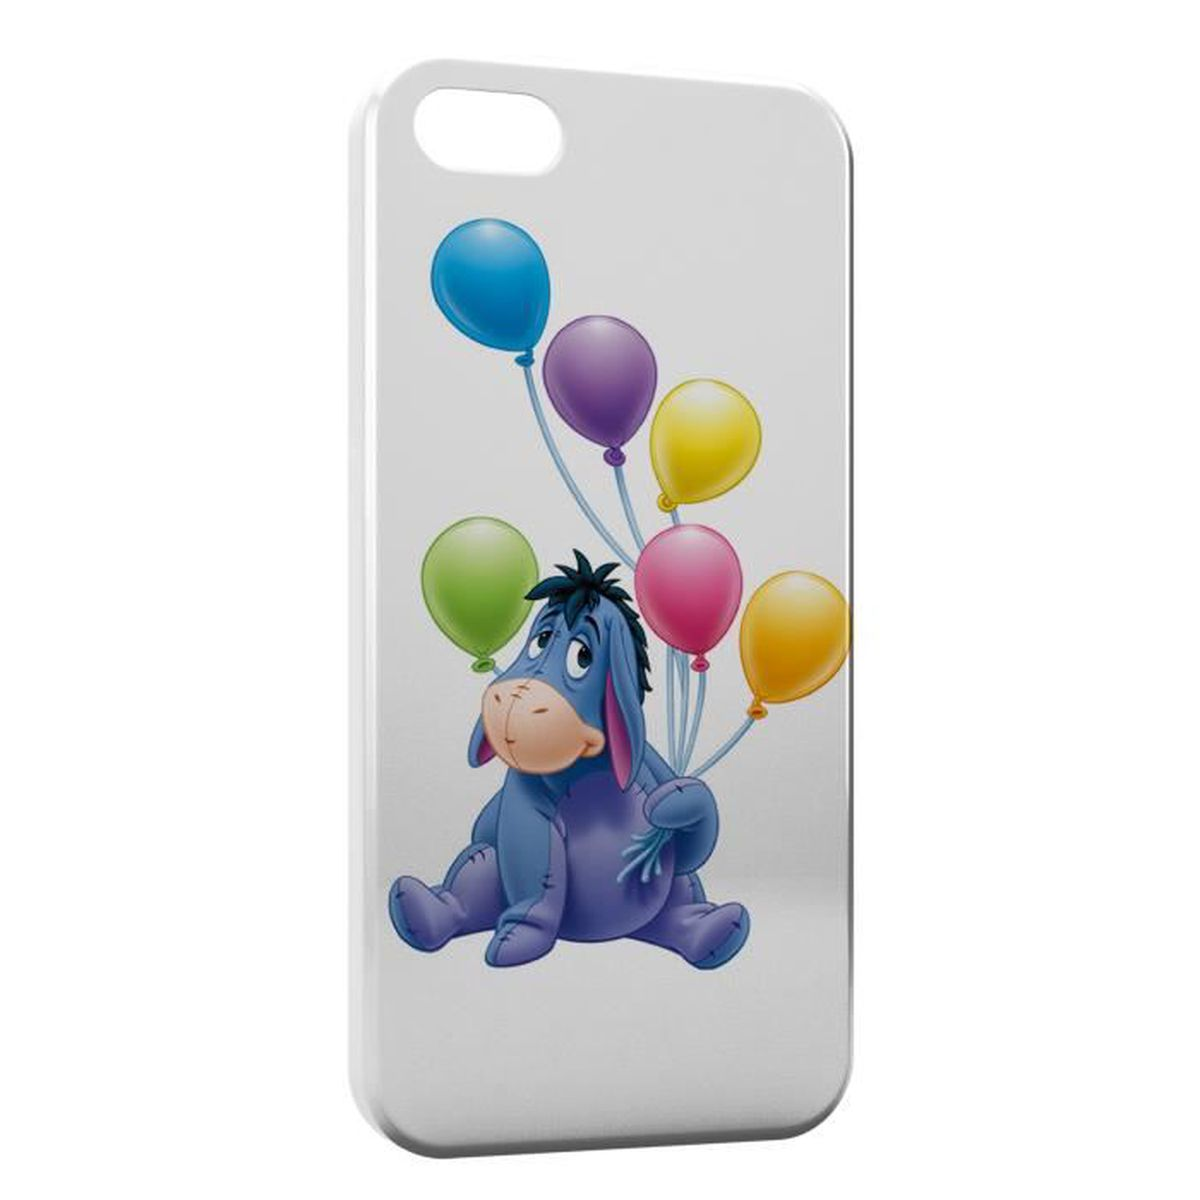 coque bourriquet iphone 7